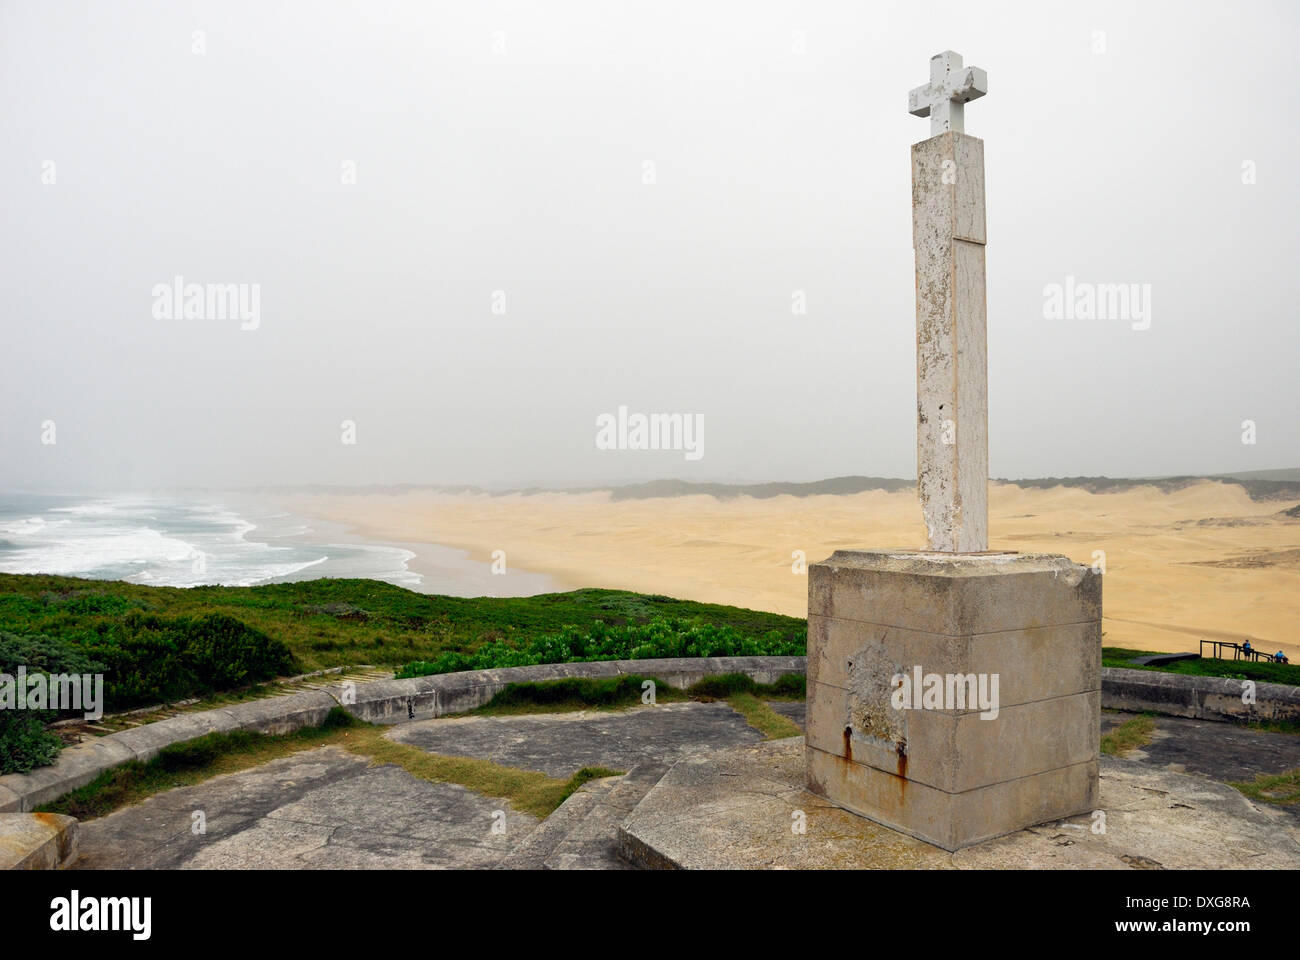 The Diaz Cross (replica) erected by Bartolomeu Dias in 1488, between Bushmans River mouth and Boknes, Eastern Cape, South Africa - Stock Image